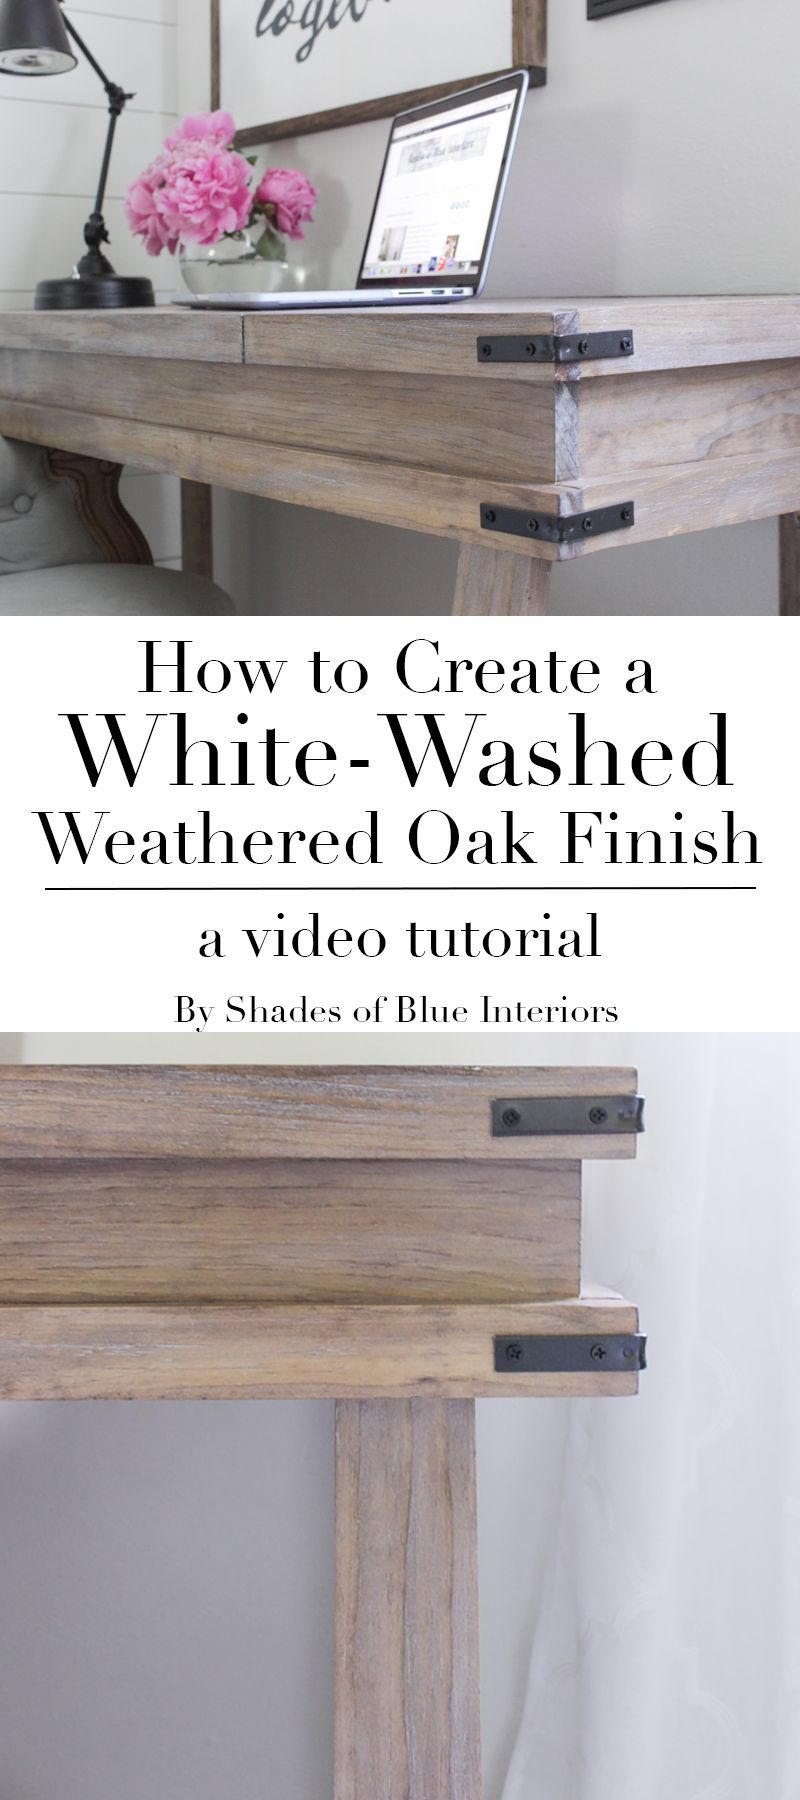 How to achieve a white washed weathered oak finish on plain smooth pine by creating a raised grain staining and sealing and then using white wax